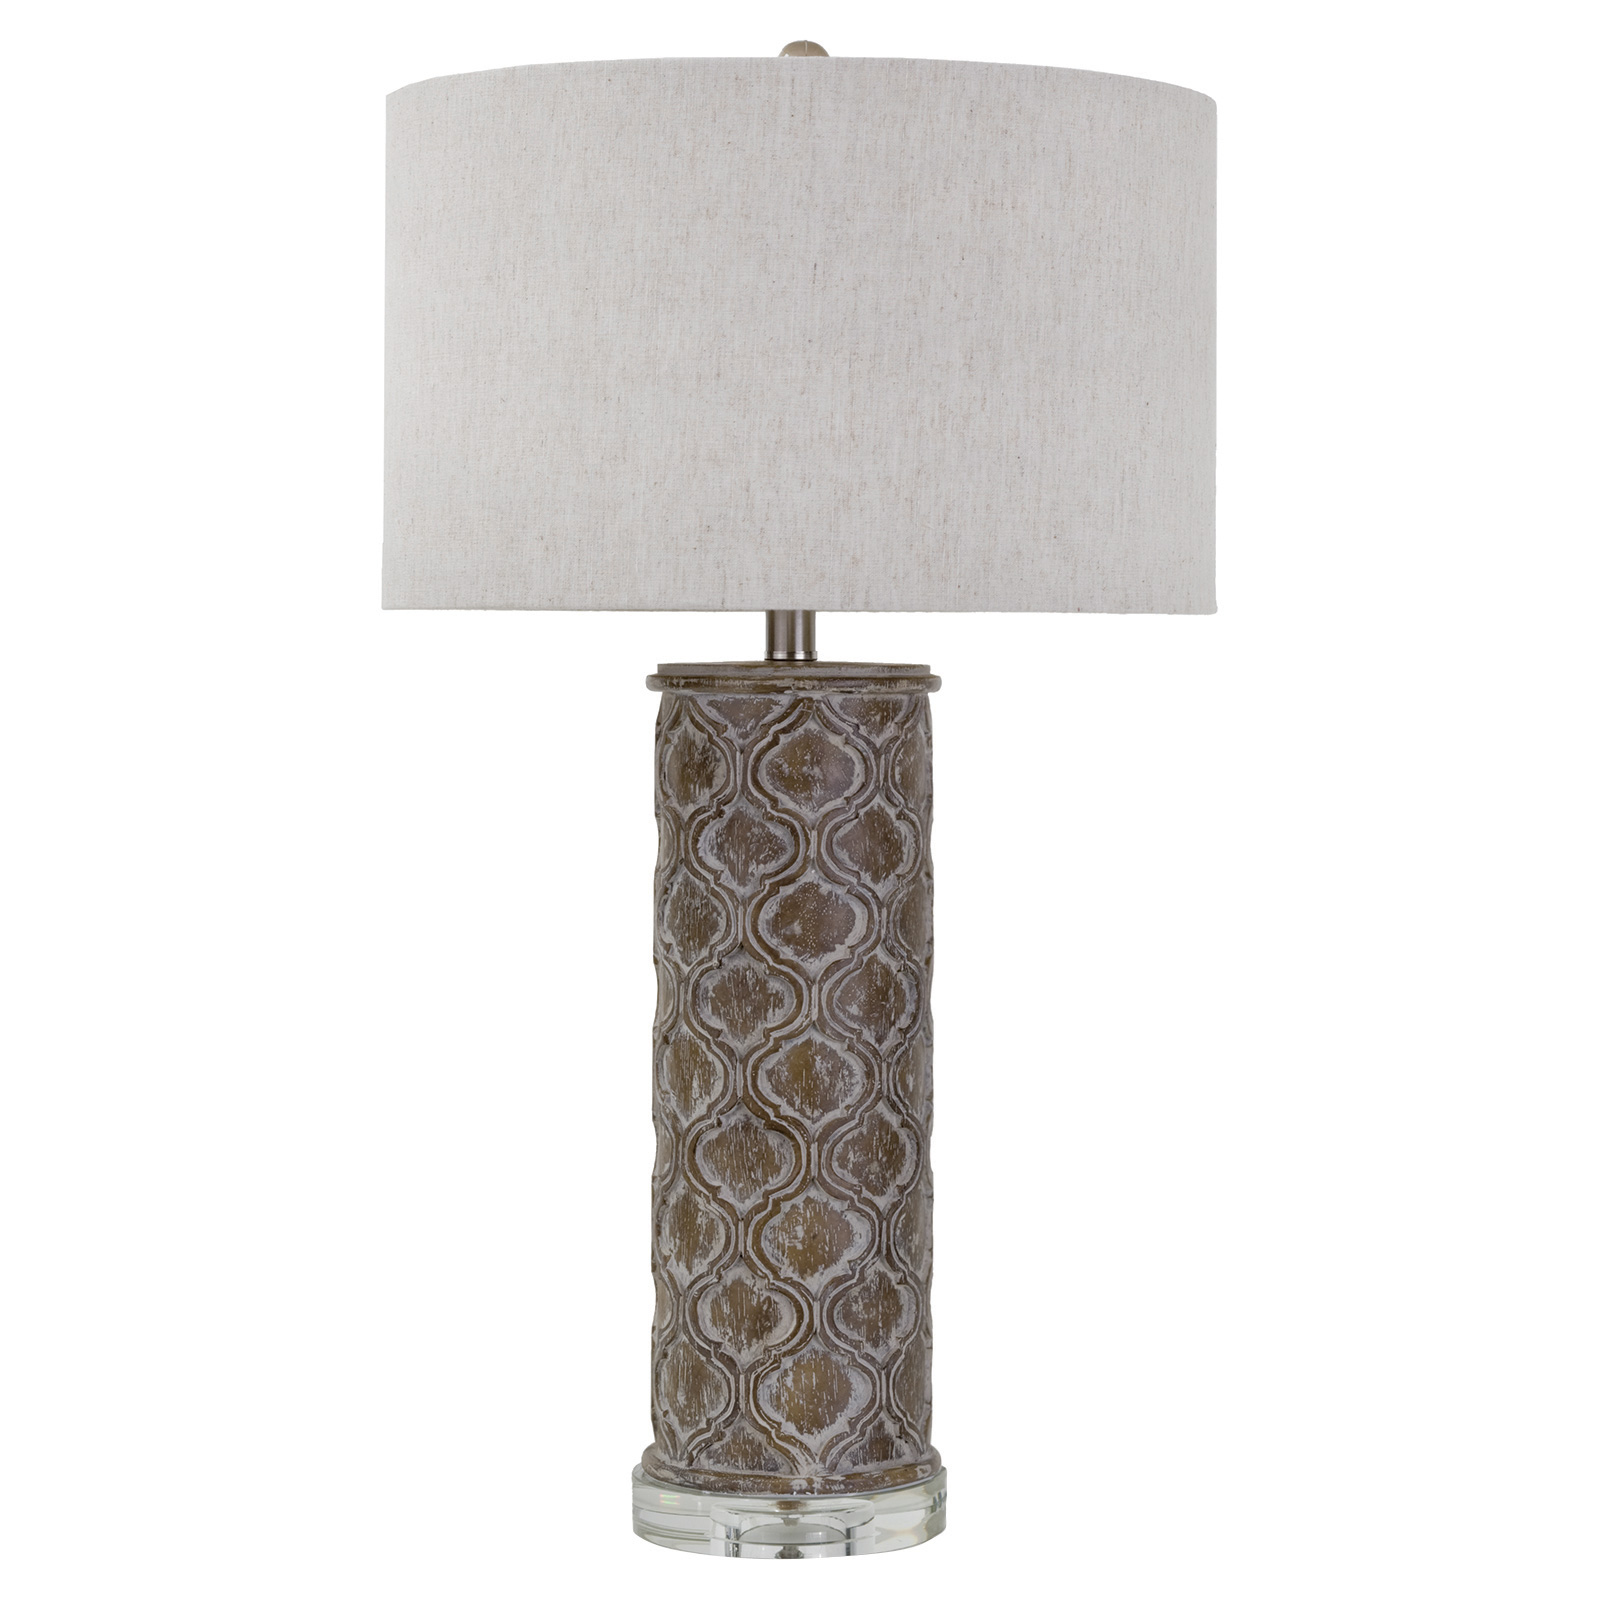 Sendak French Country Rustic Column Table Lamp